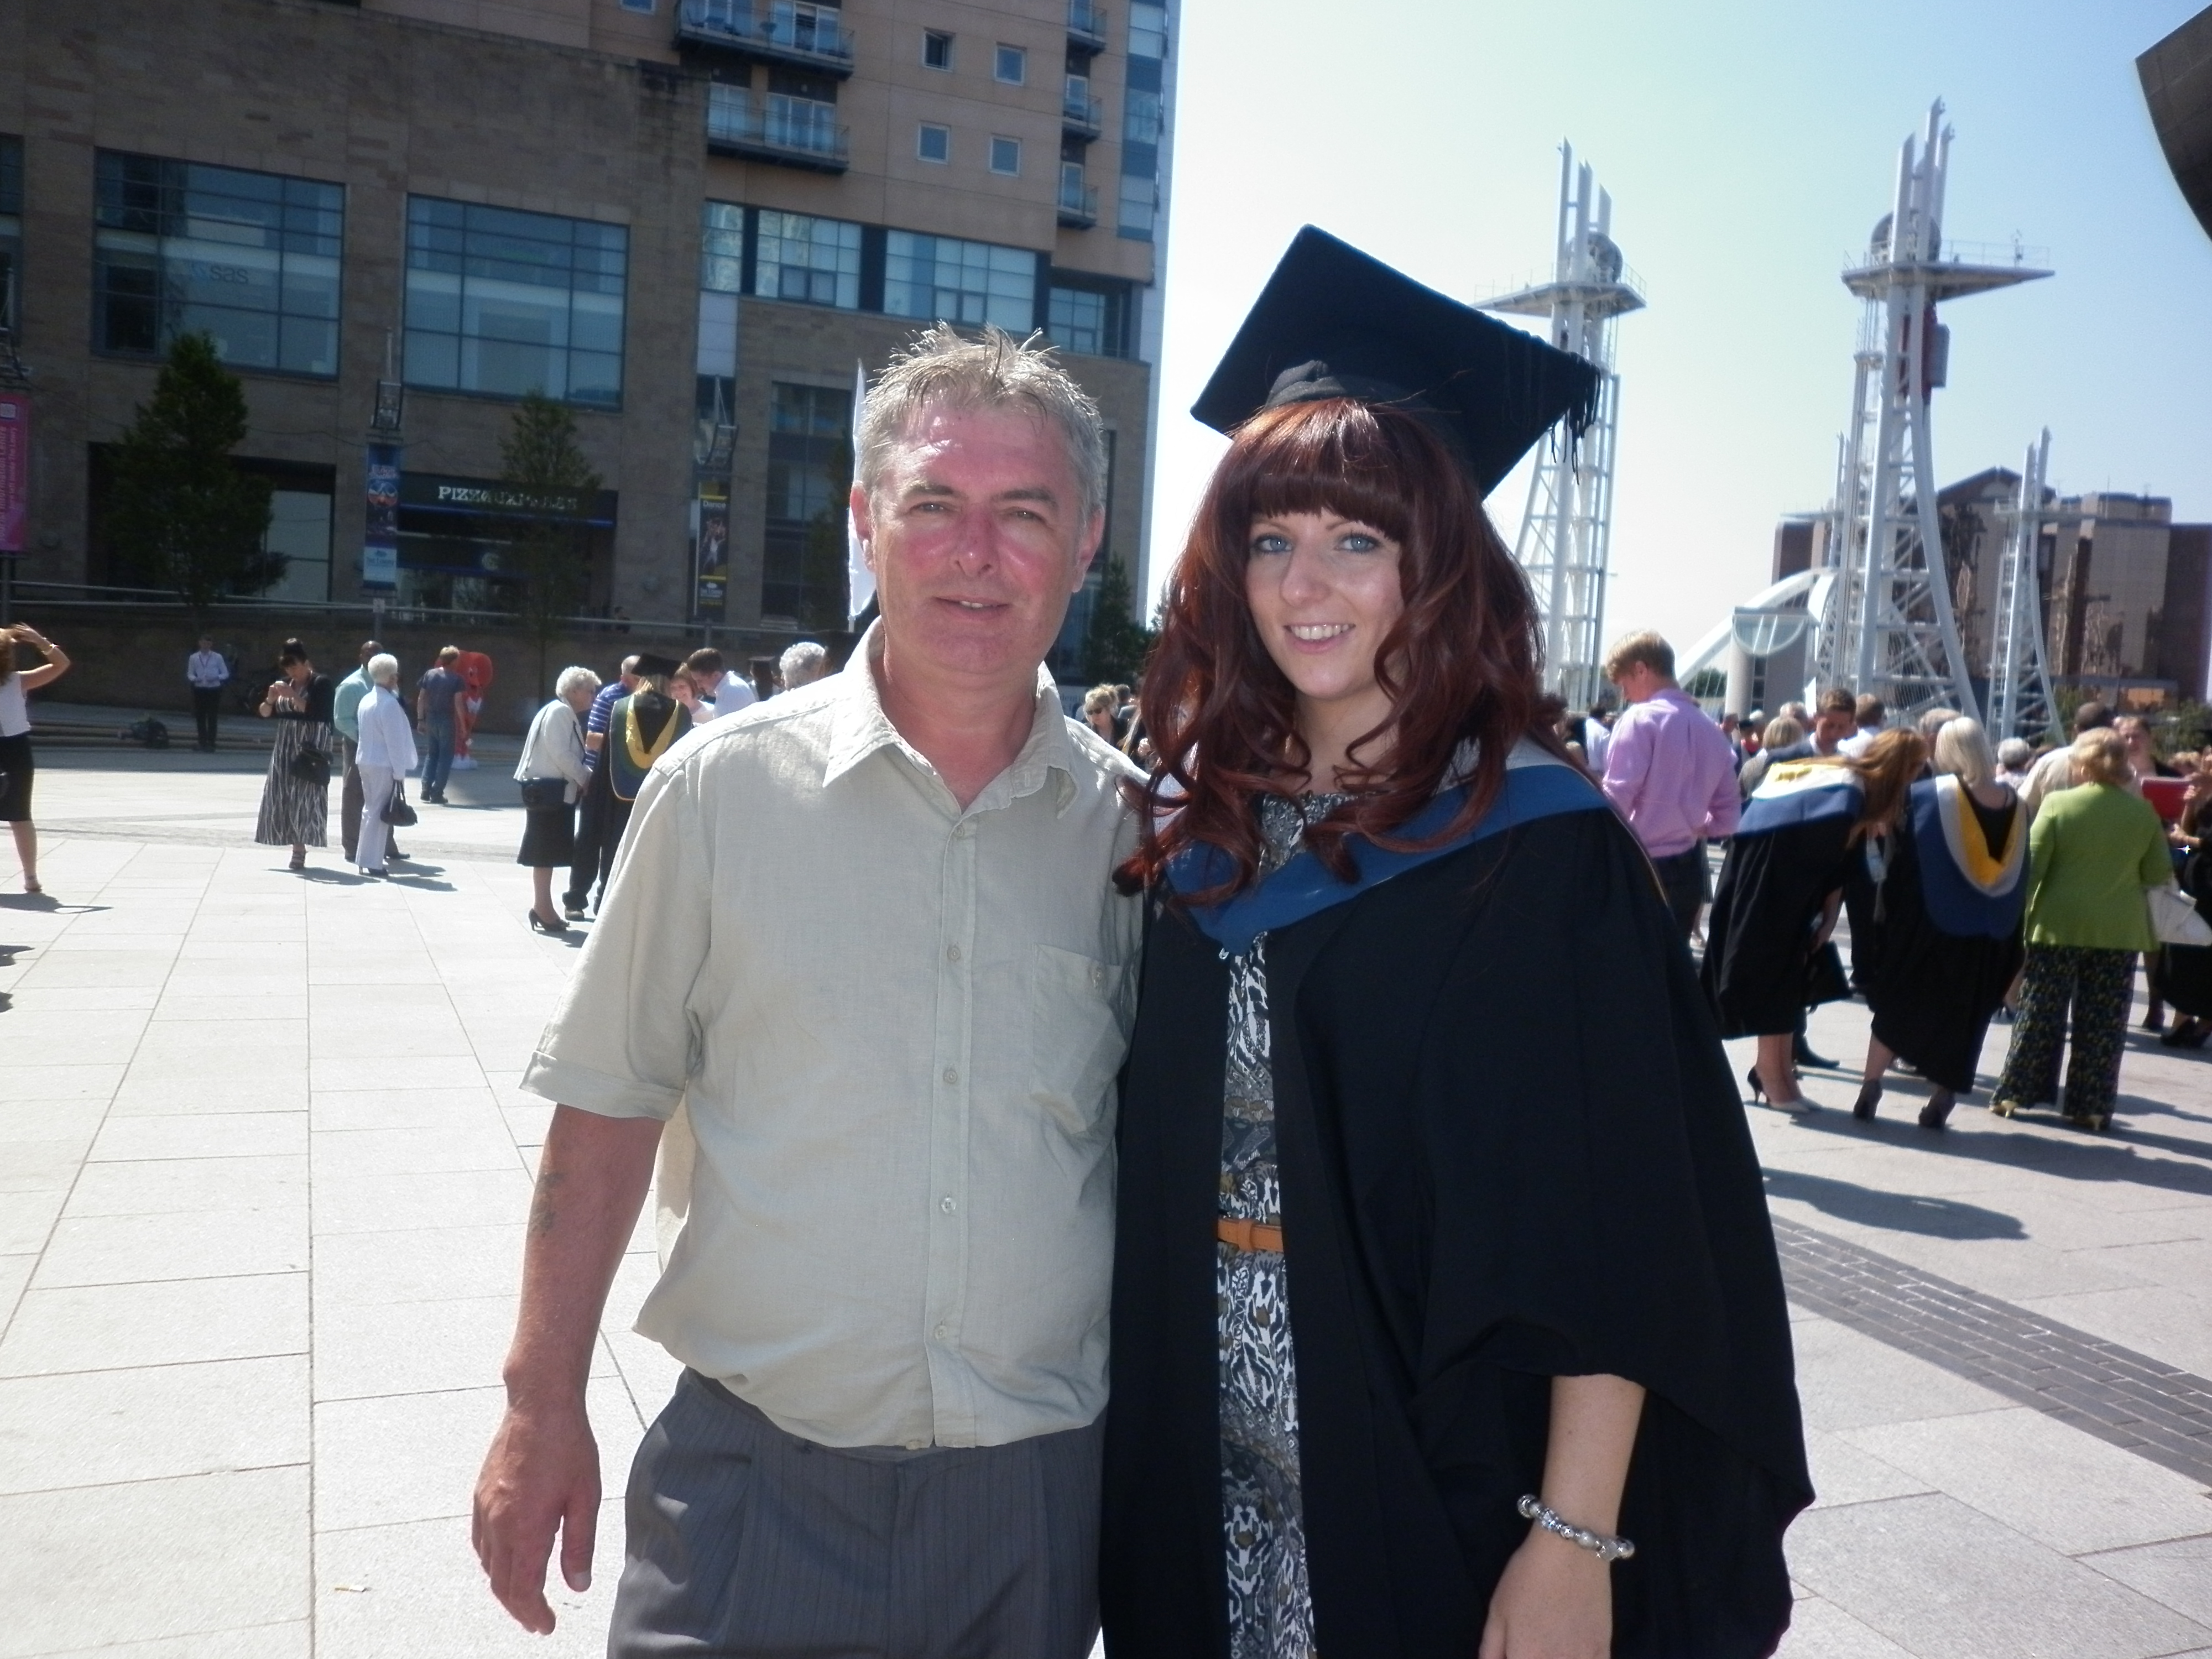 Ashley with her dad at Graduation Day 2013